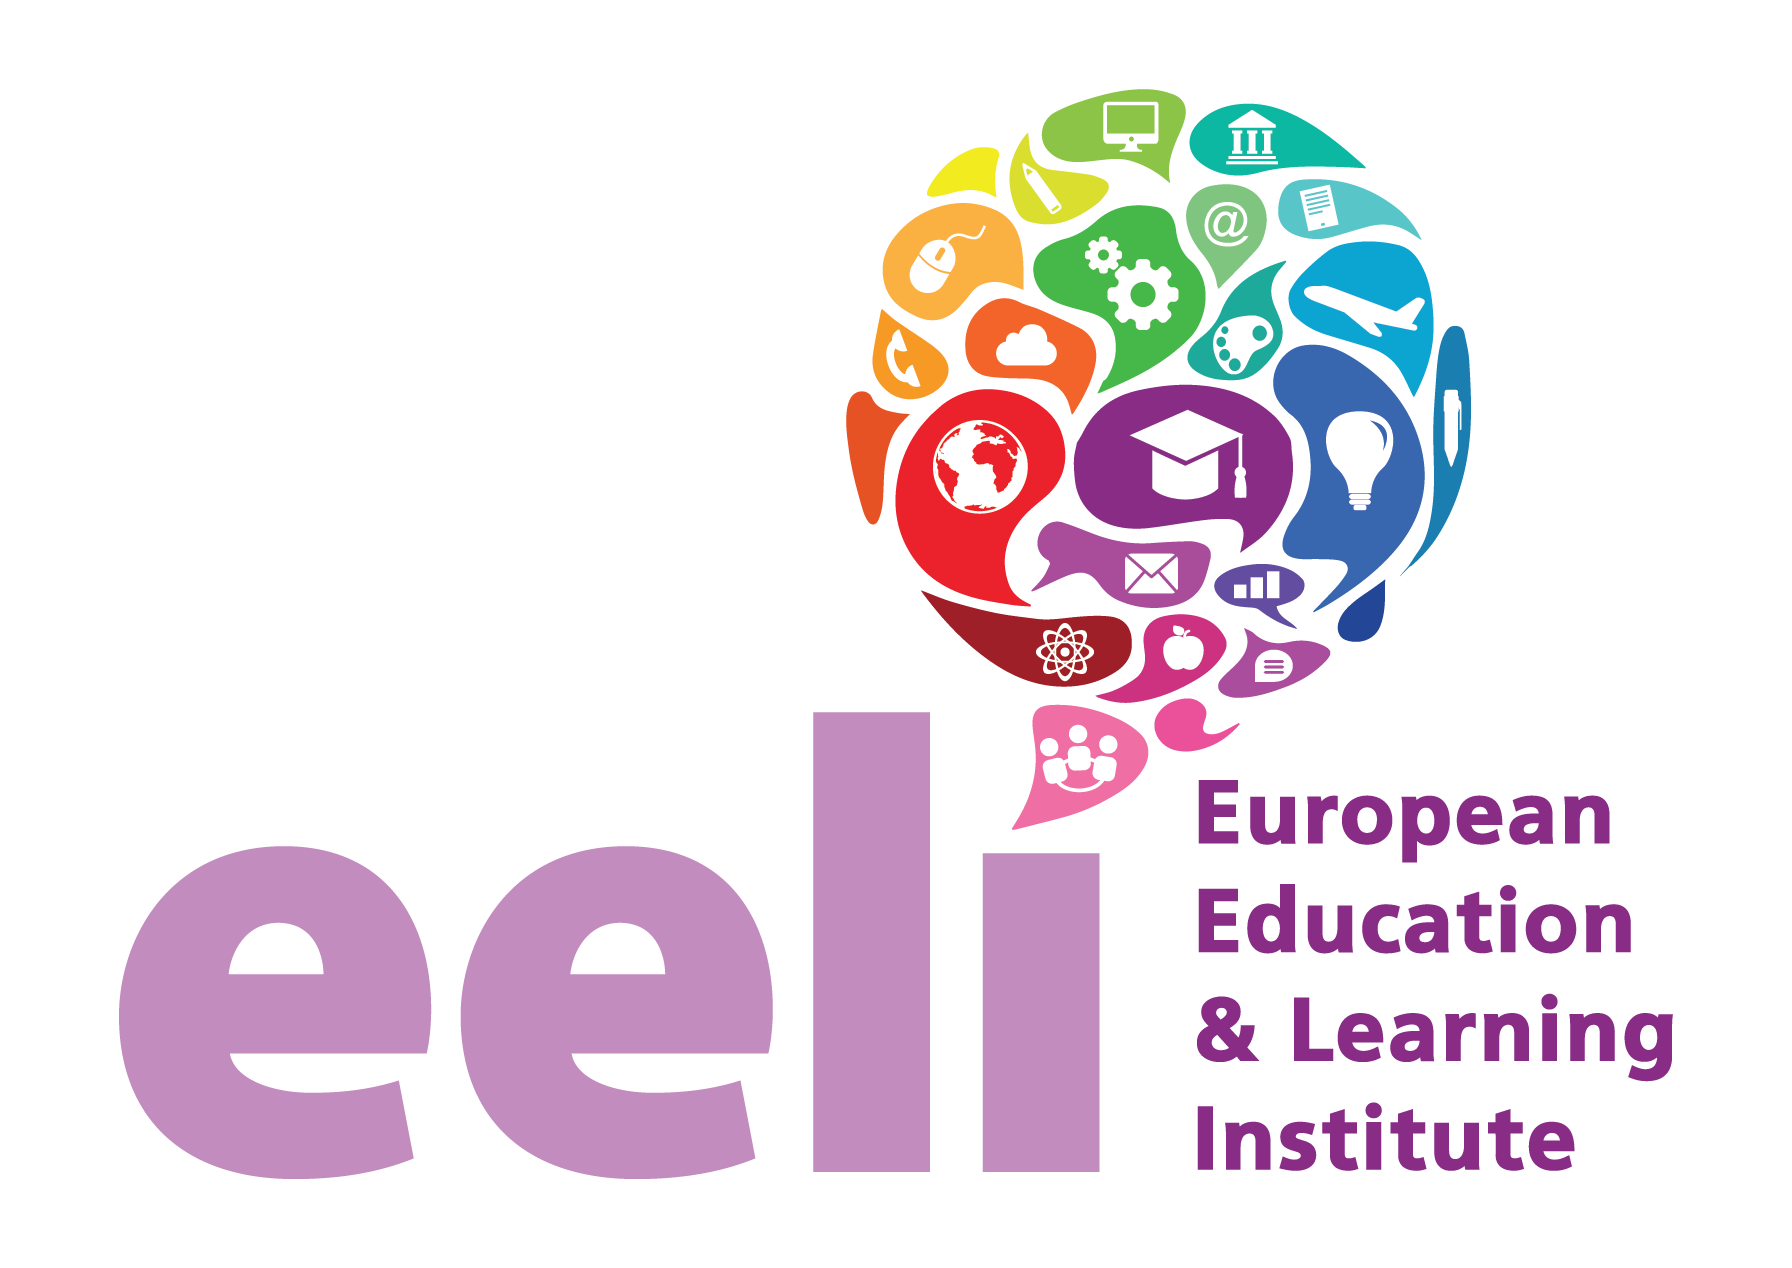 European Education & Learning Institute